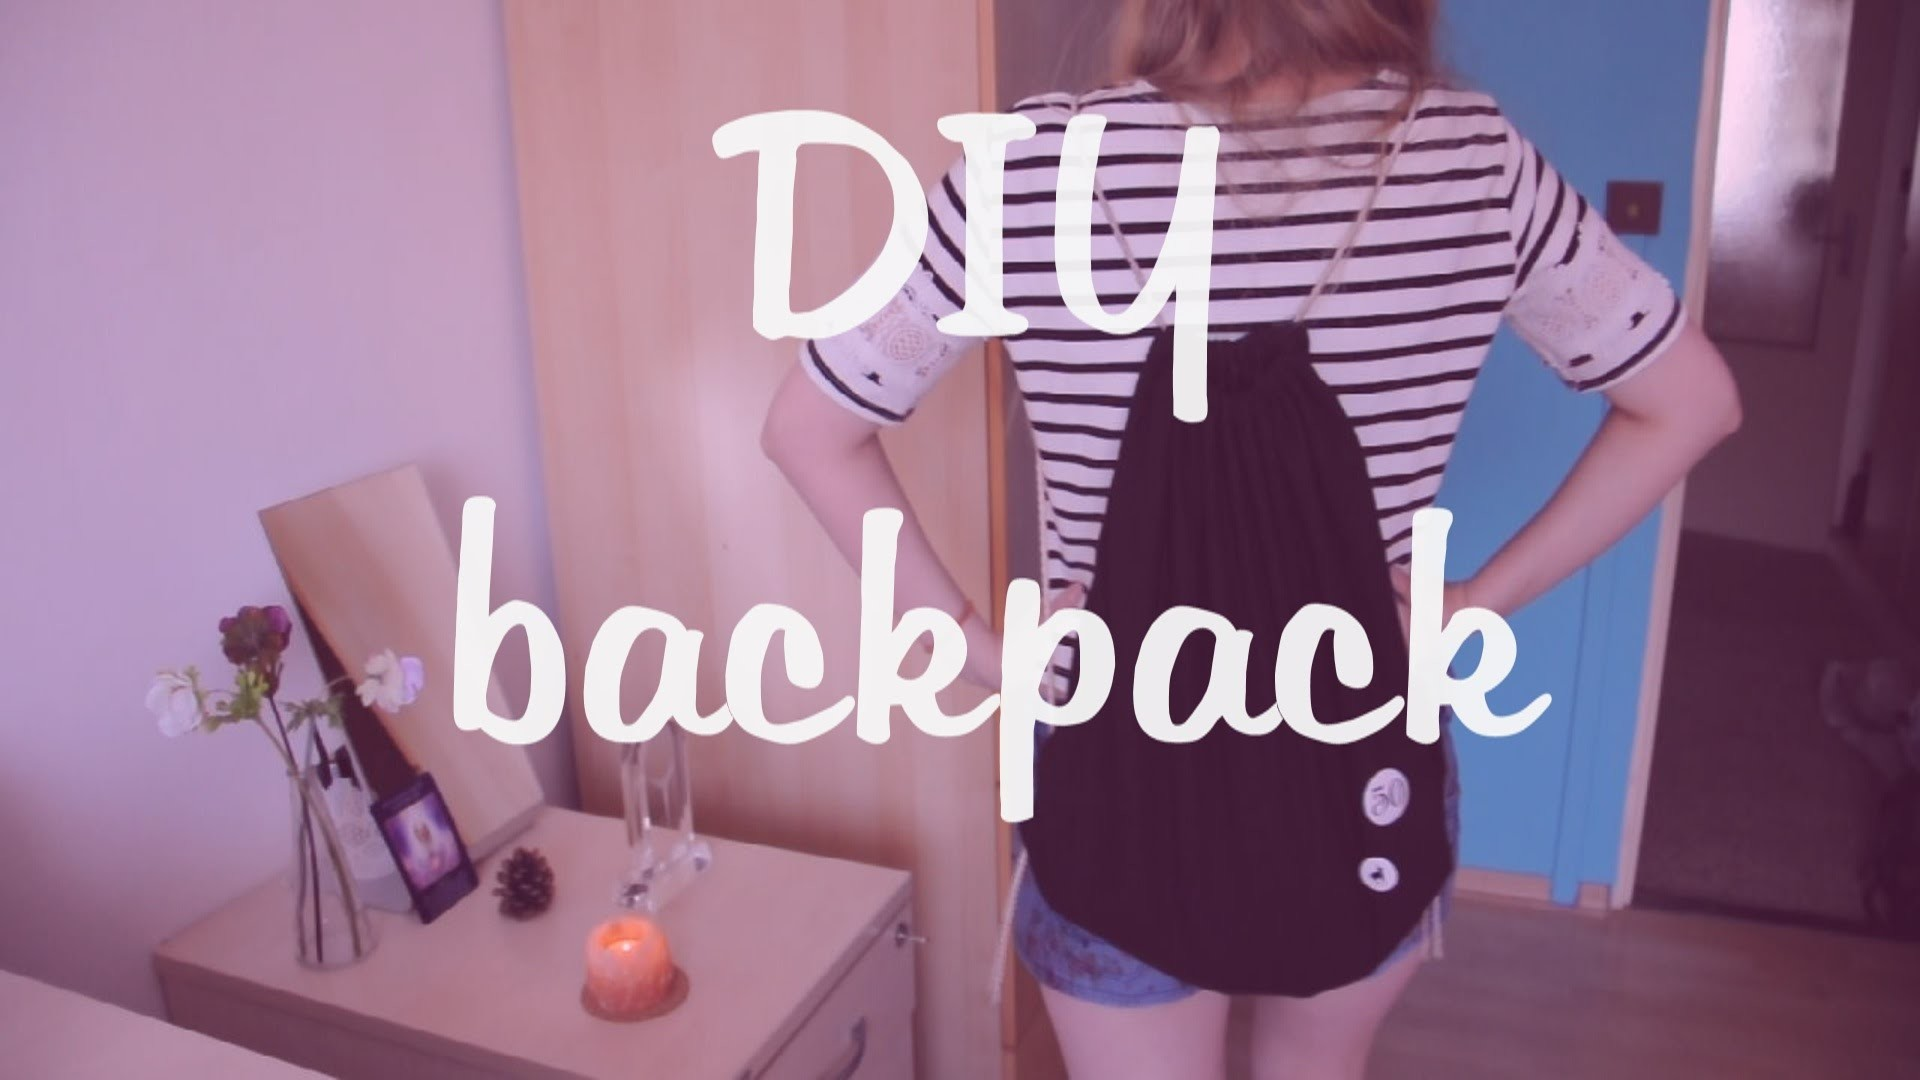 DIY Backpack: Vak.pytel na záda.